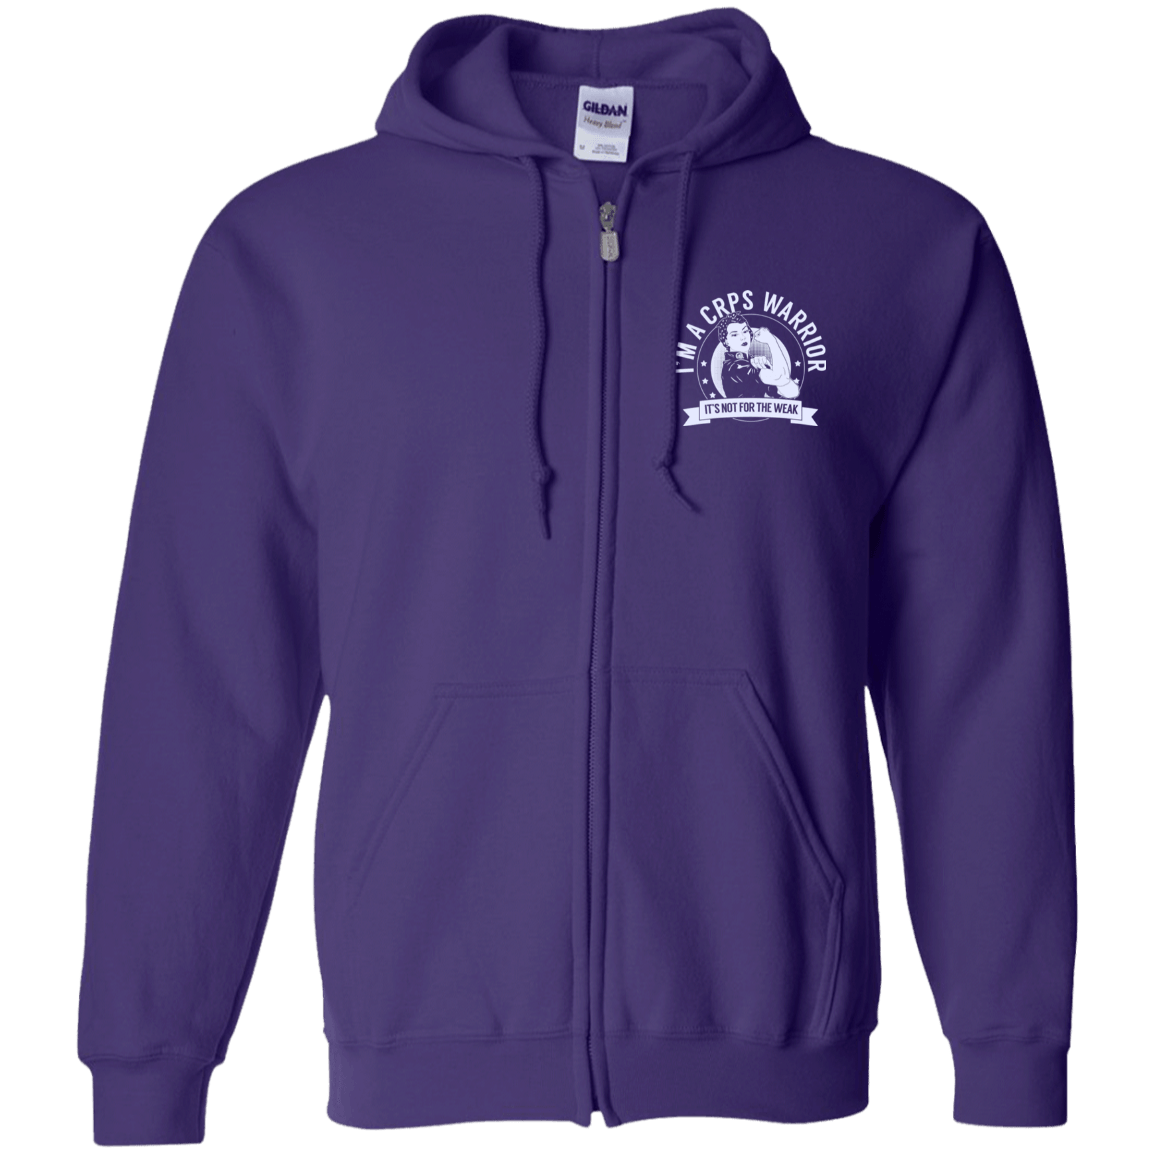 Sweatshirts - Complex Regional Pain Syndrome - CRPS Warrior NFTW Zip Up Hooded Sweatshirt